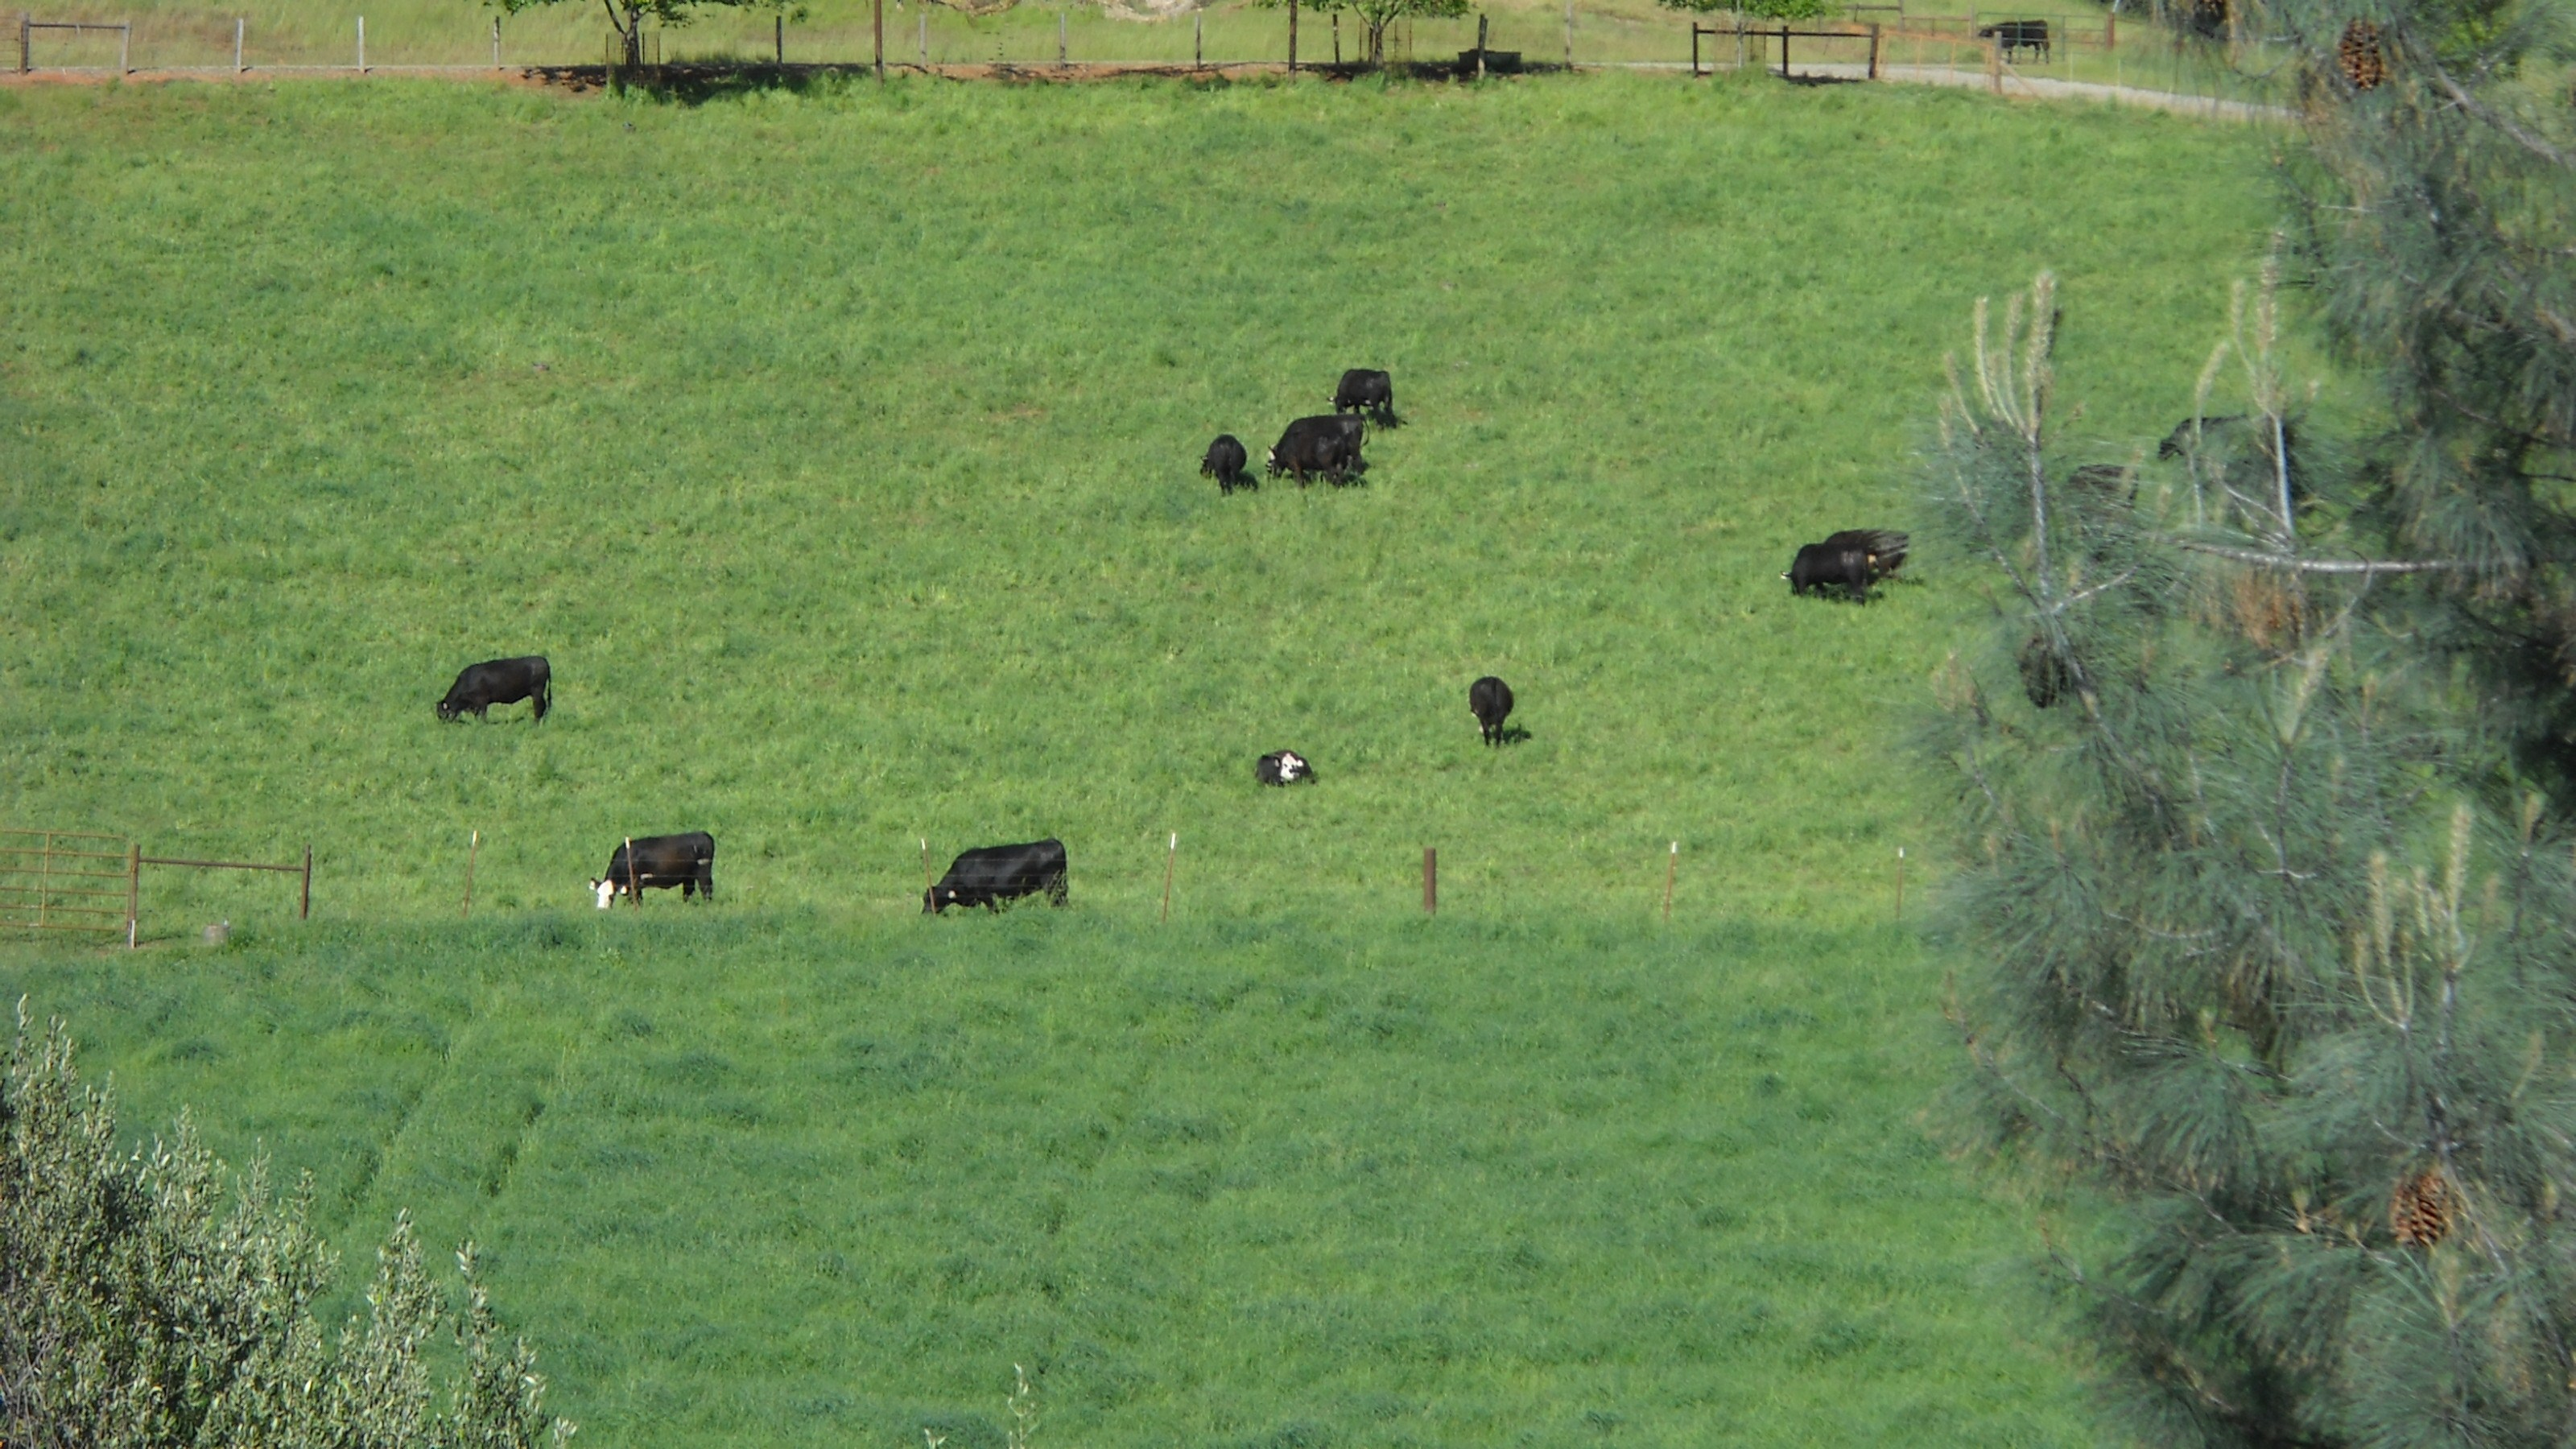 Cattle at Grazing Academy